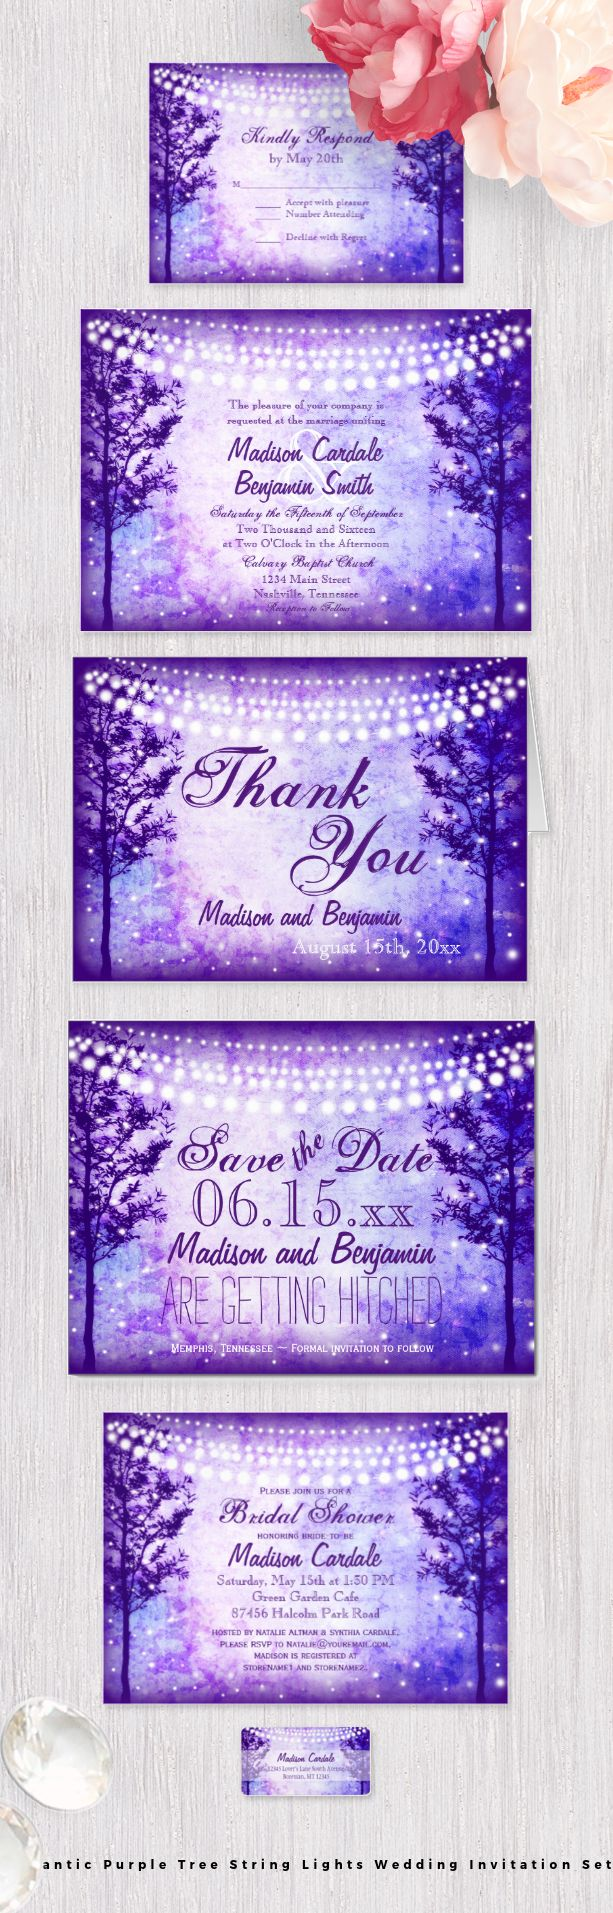 Romantic Rustic Purple Trees String of Lights Wedding Invitation Set with two trees and garden hanging lights and twinkle fairy lights.  These would be great for a rustic country wedding or evening garden wedding. #wedding #purple